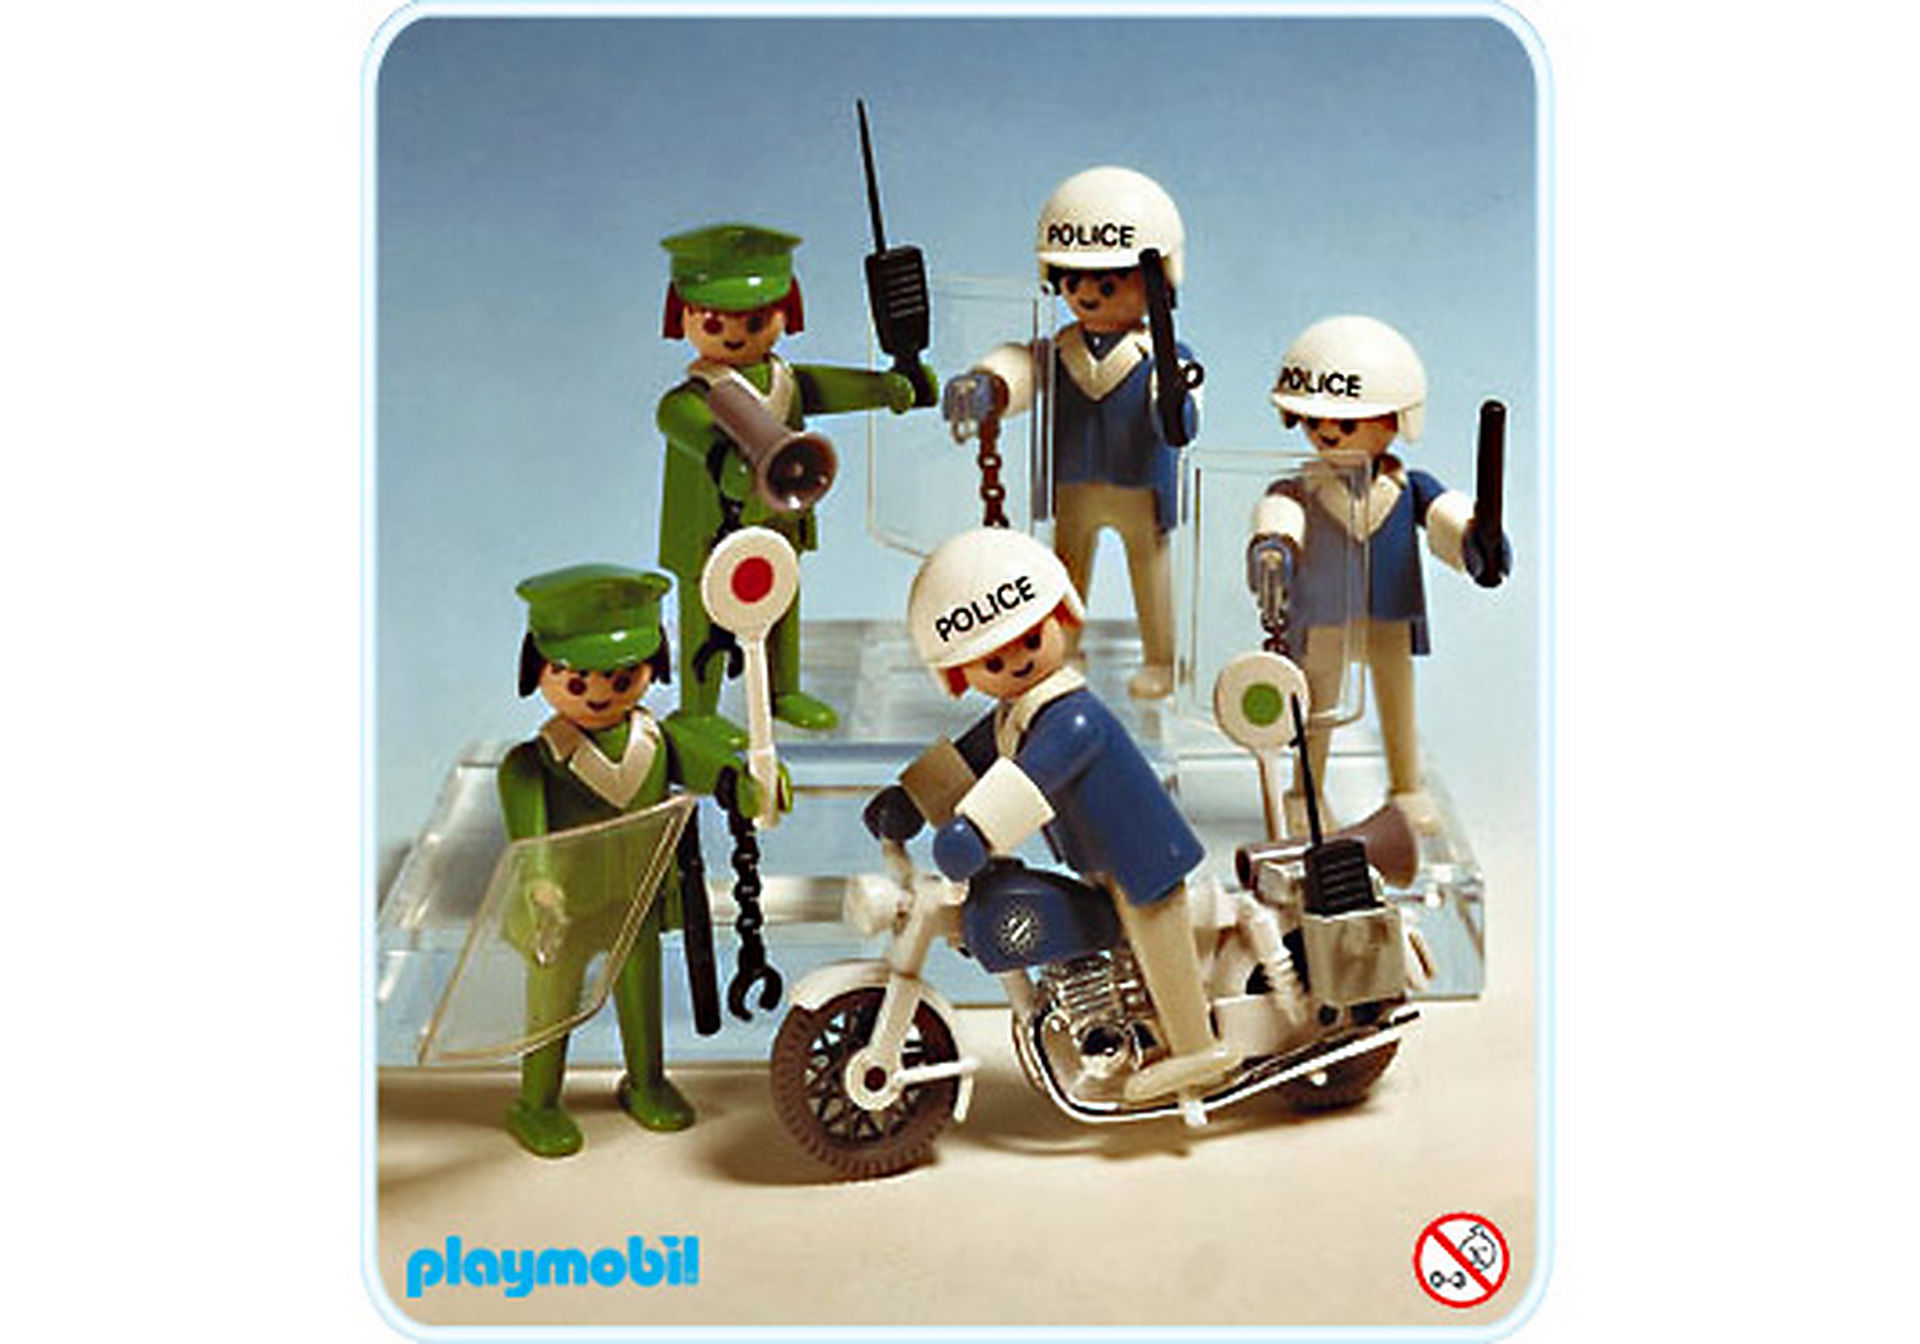 http://media.playmobil.com/i/playmobil/3232-A_product_detail/Polizei - Set